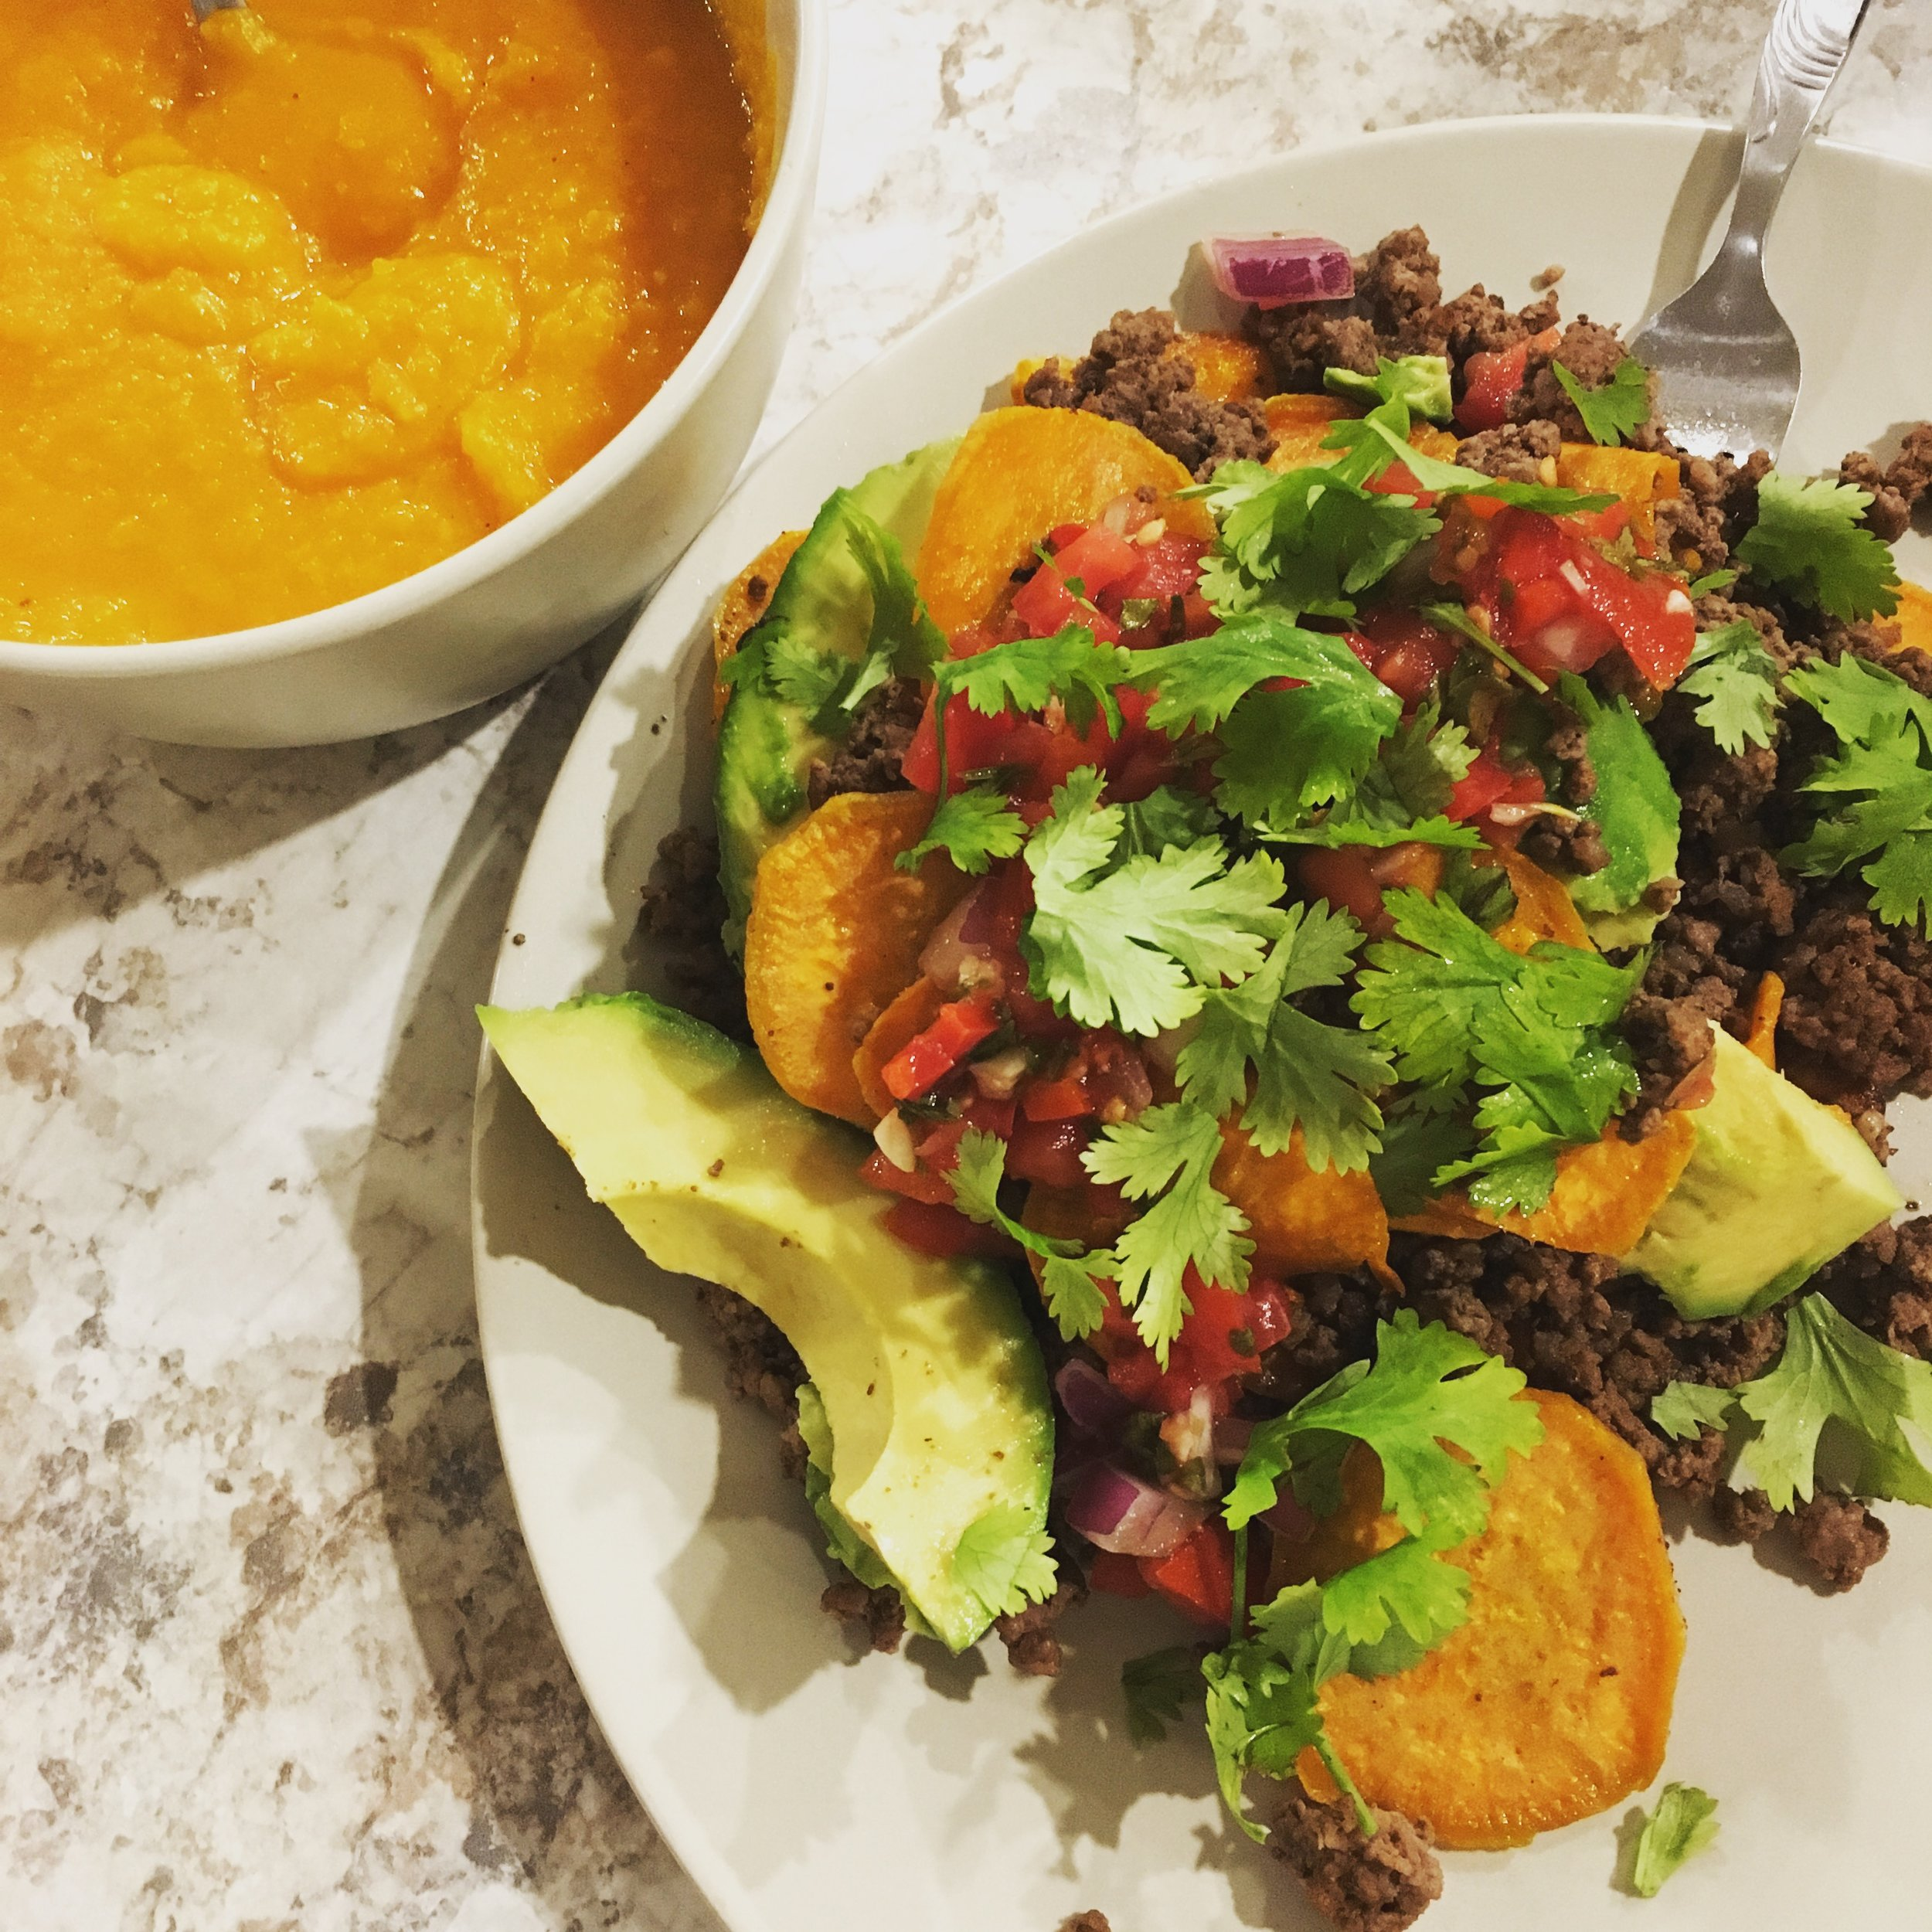 sweet potato nachos w/ beef, toppings, and butternut squash soup on the side